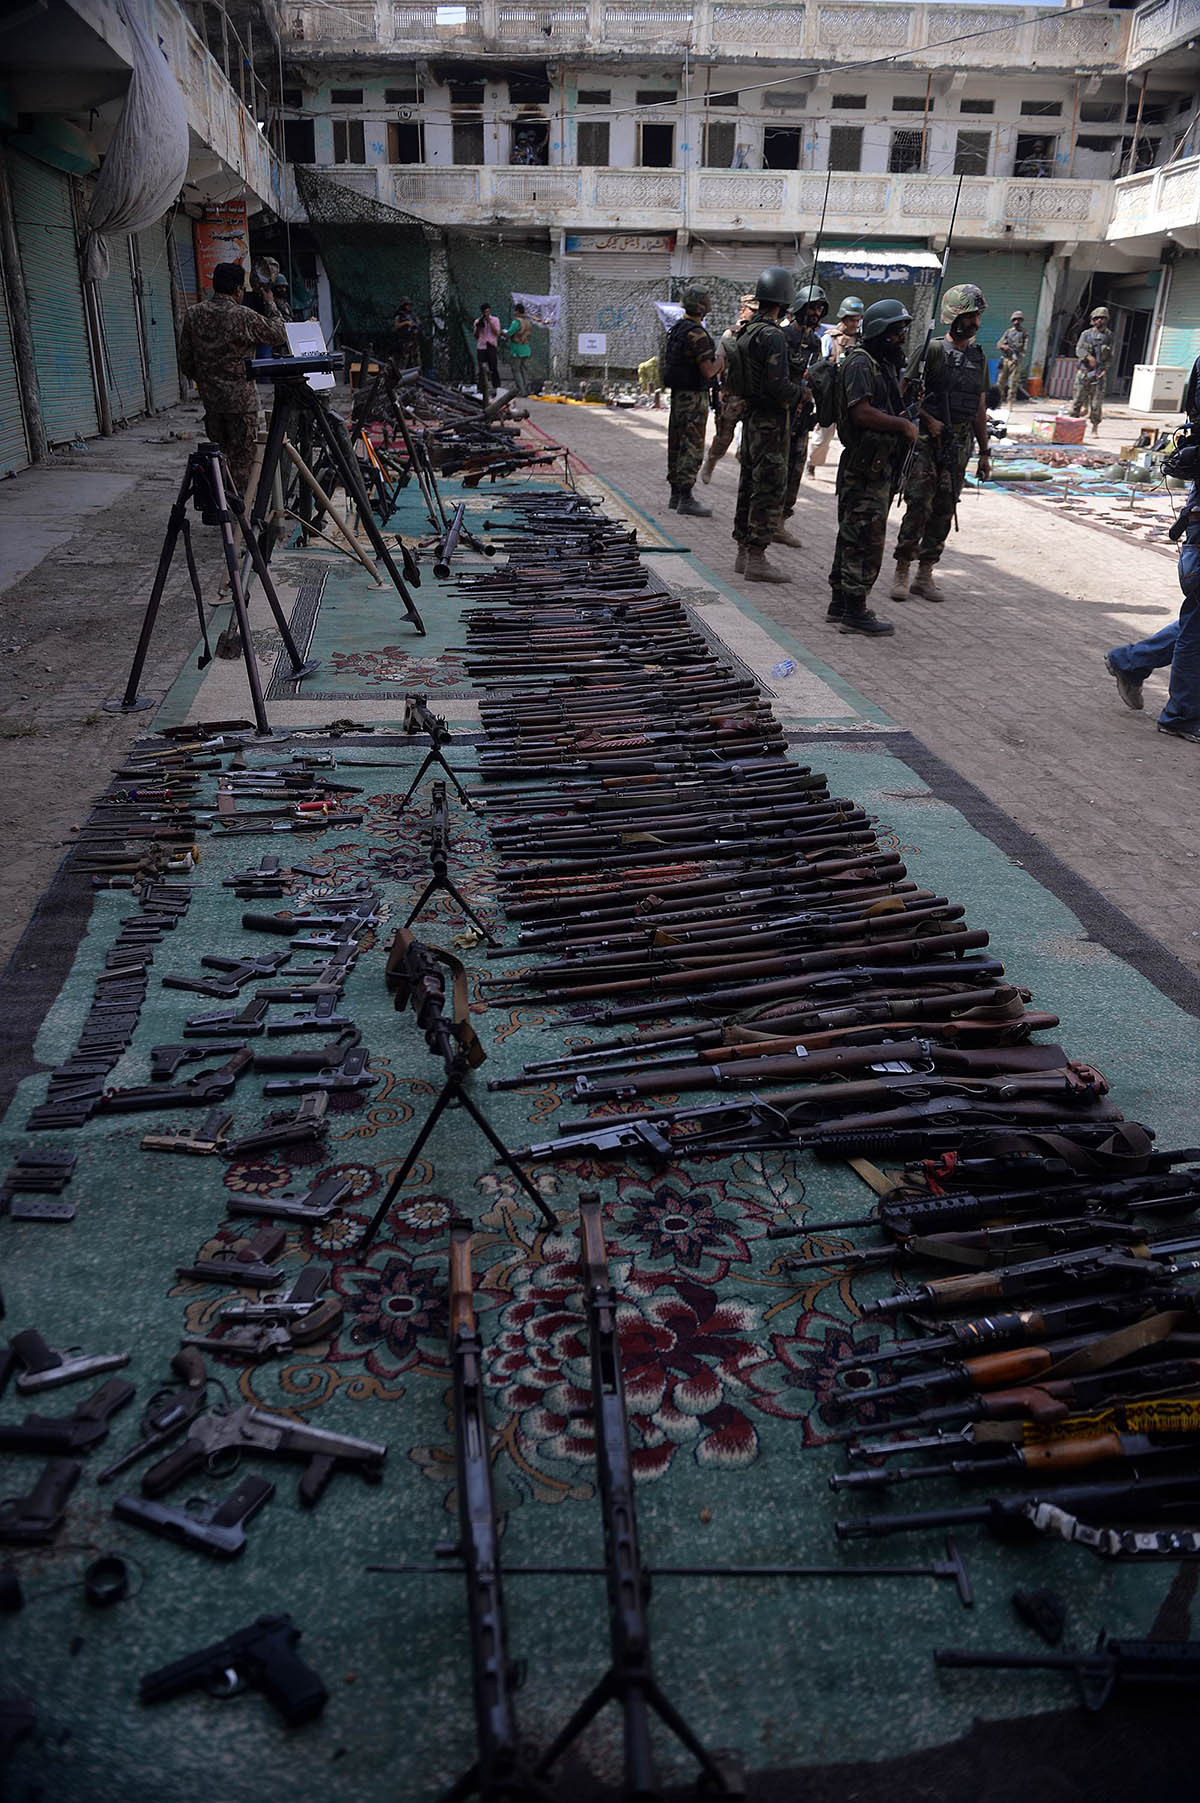 Soldiers stand by seized weapons at an empty bazaar during a military operation against Taliban militants in the main town of Miramshah in North Waziristan on July 9, 2014. — Photo by AFP